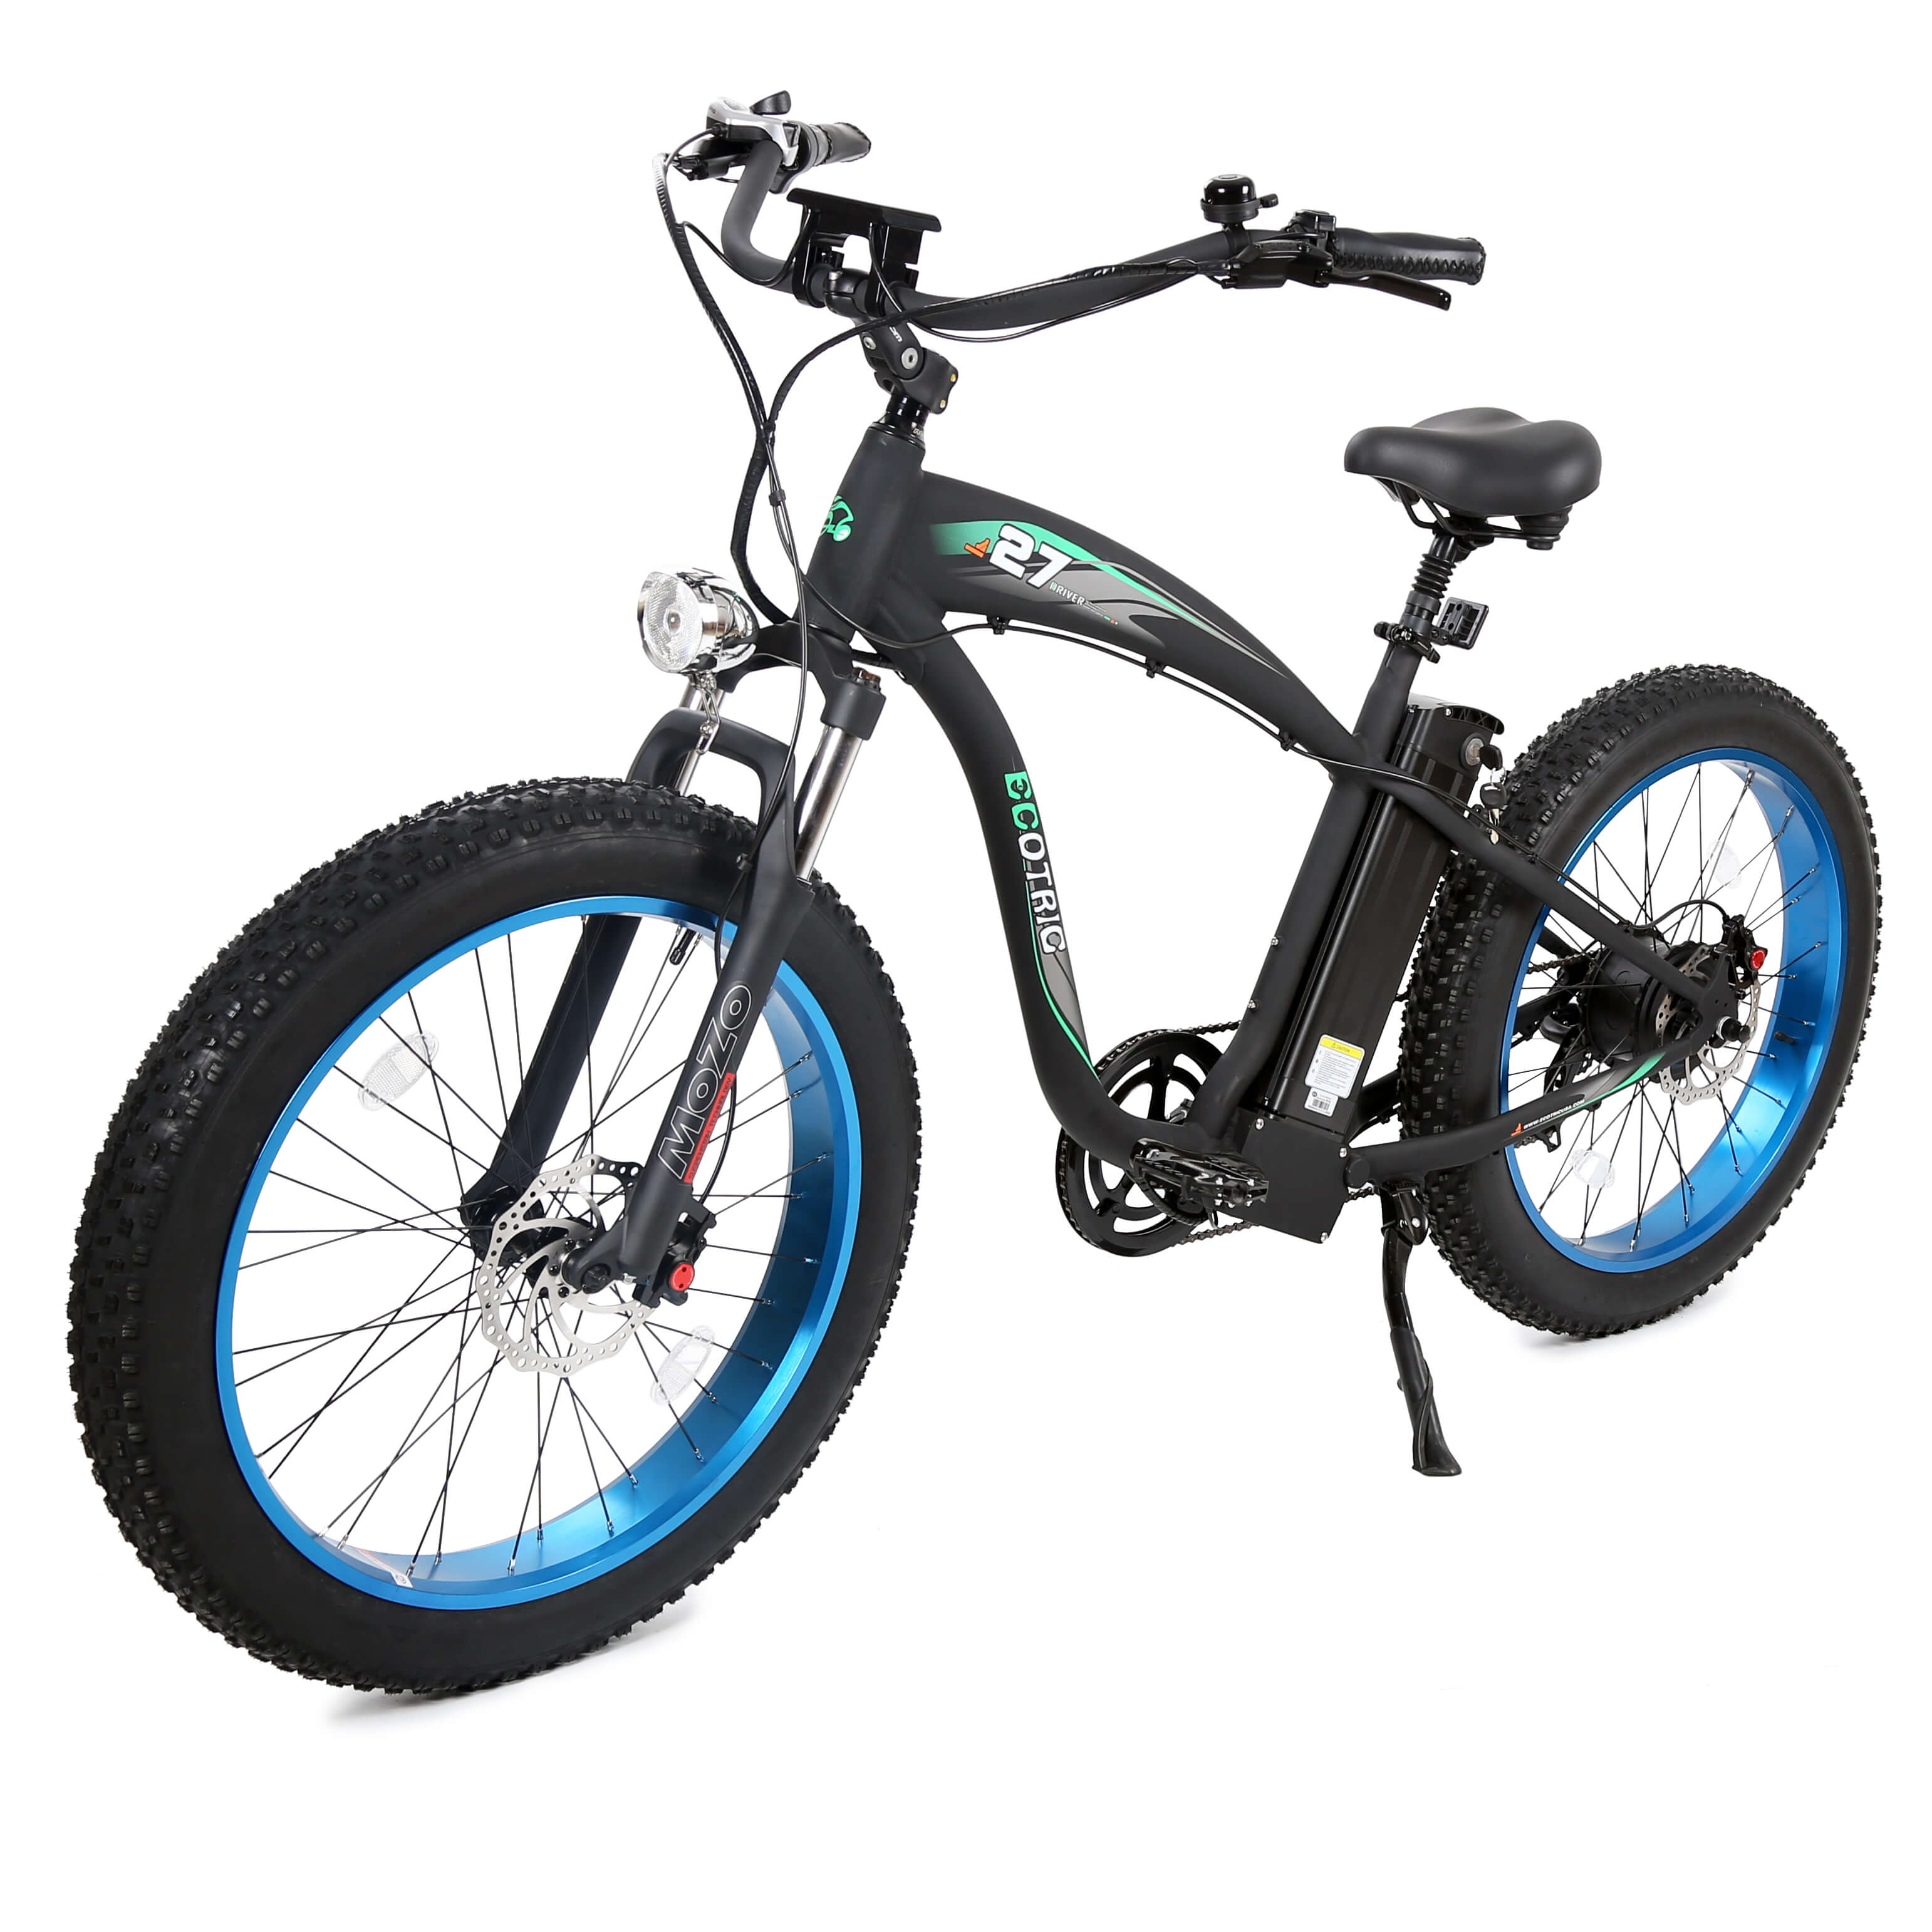 Crankworks Ecotric-Hammer 48V 1000W Fat Tire All Terrain Electric Bicycle